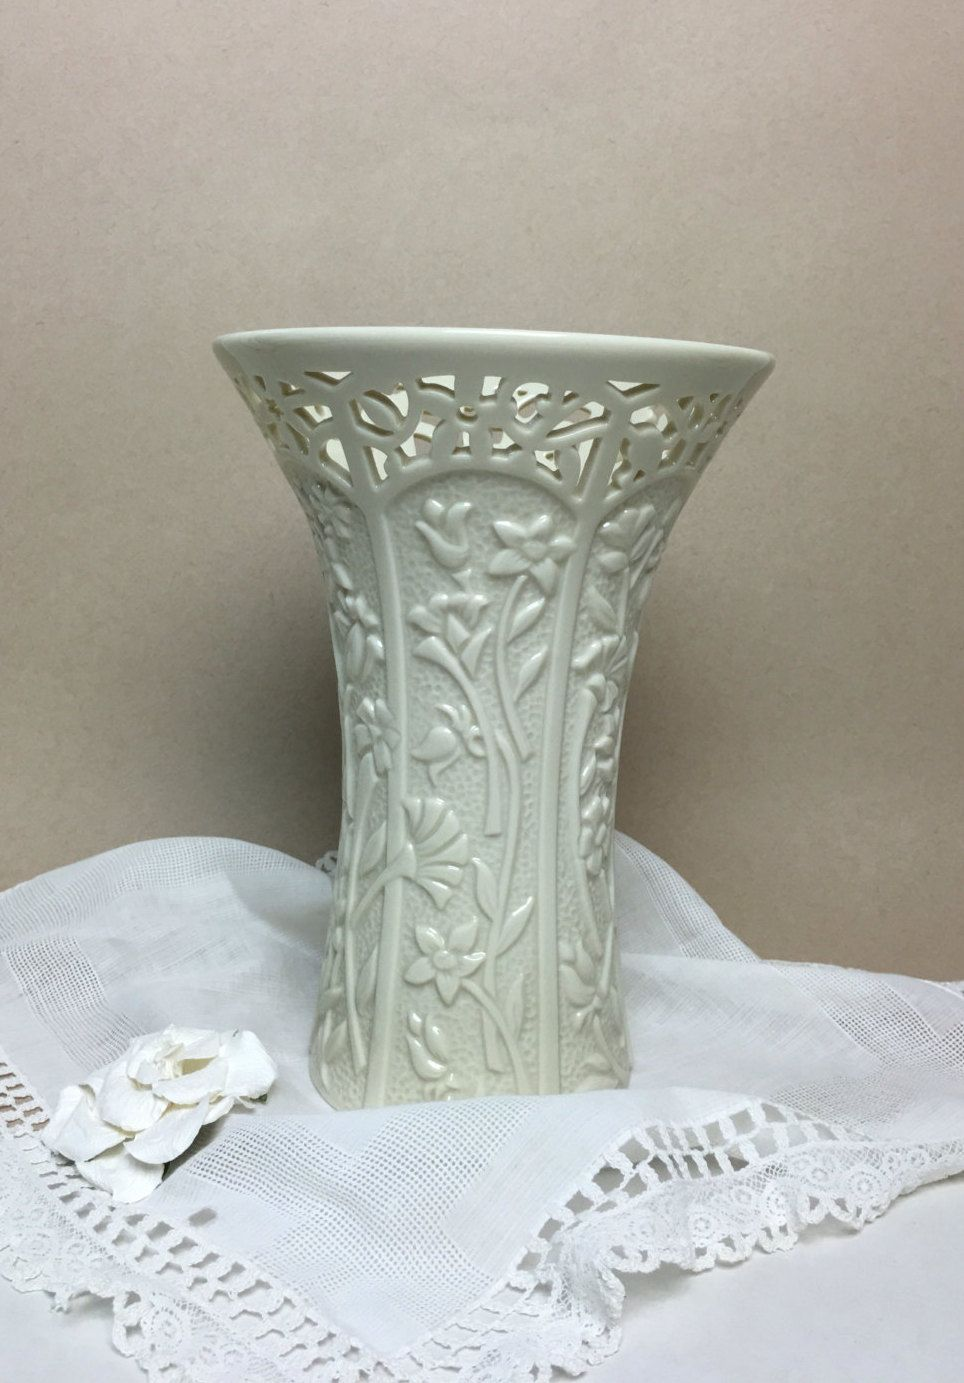 Lenox china tall vase stemmed flowers pierced lattice rim by lenox china tall vase stemmed flowers pierced lattice rim by anaforia on etsy floridaeventfo Image collections